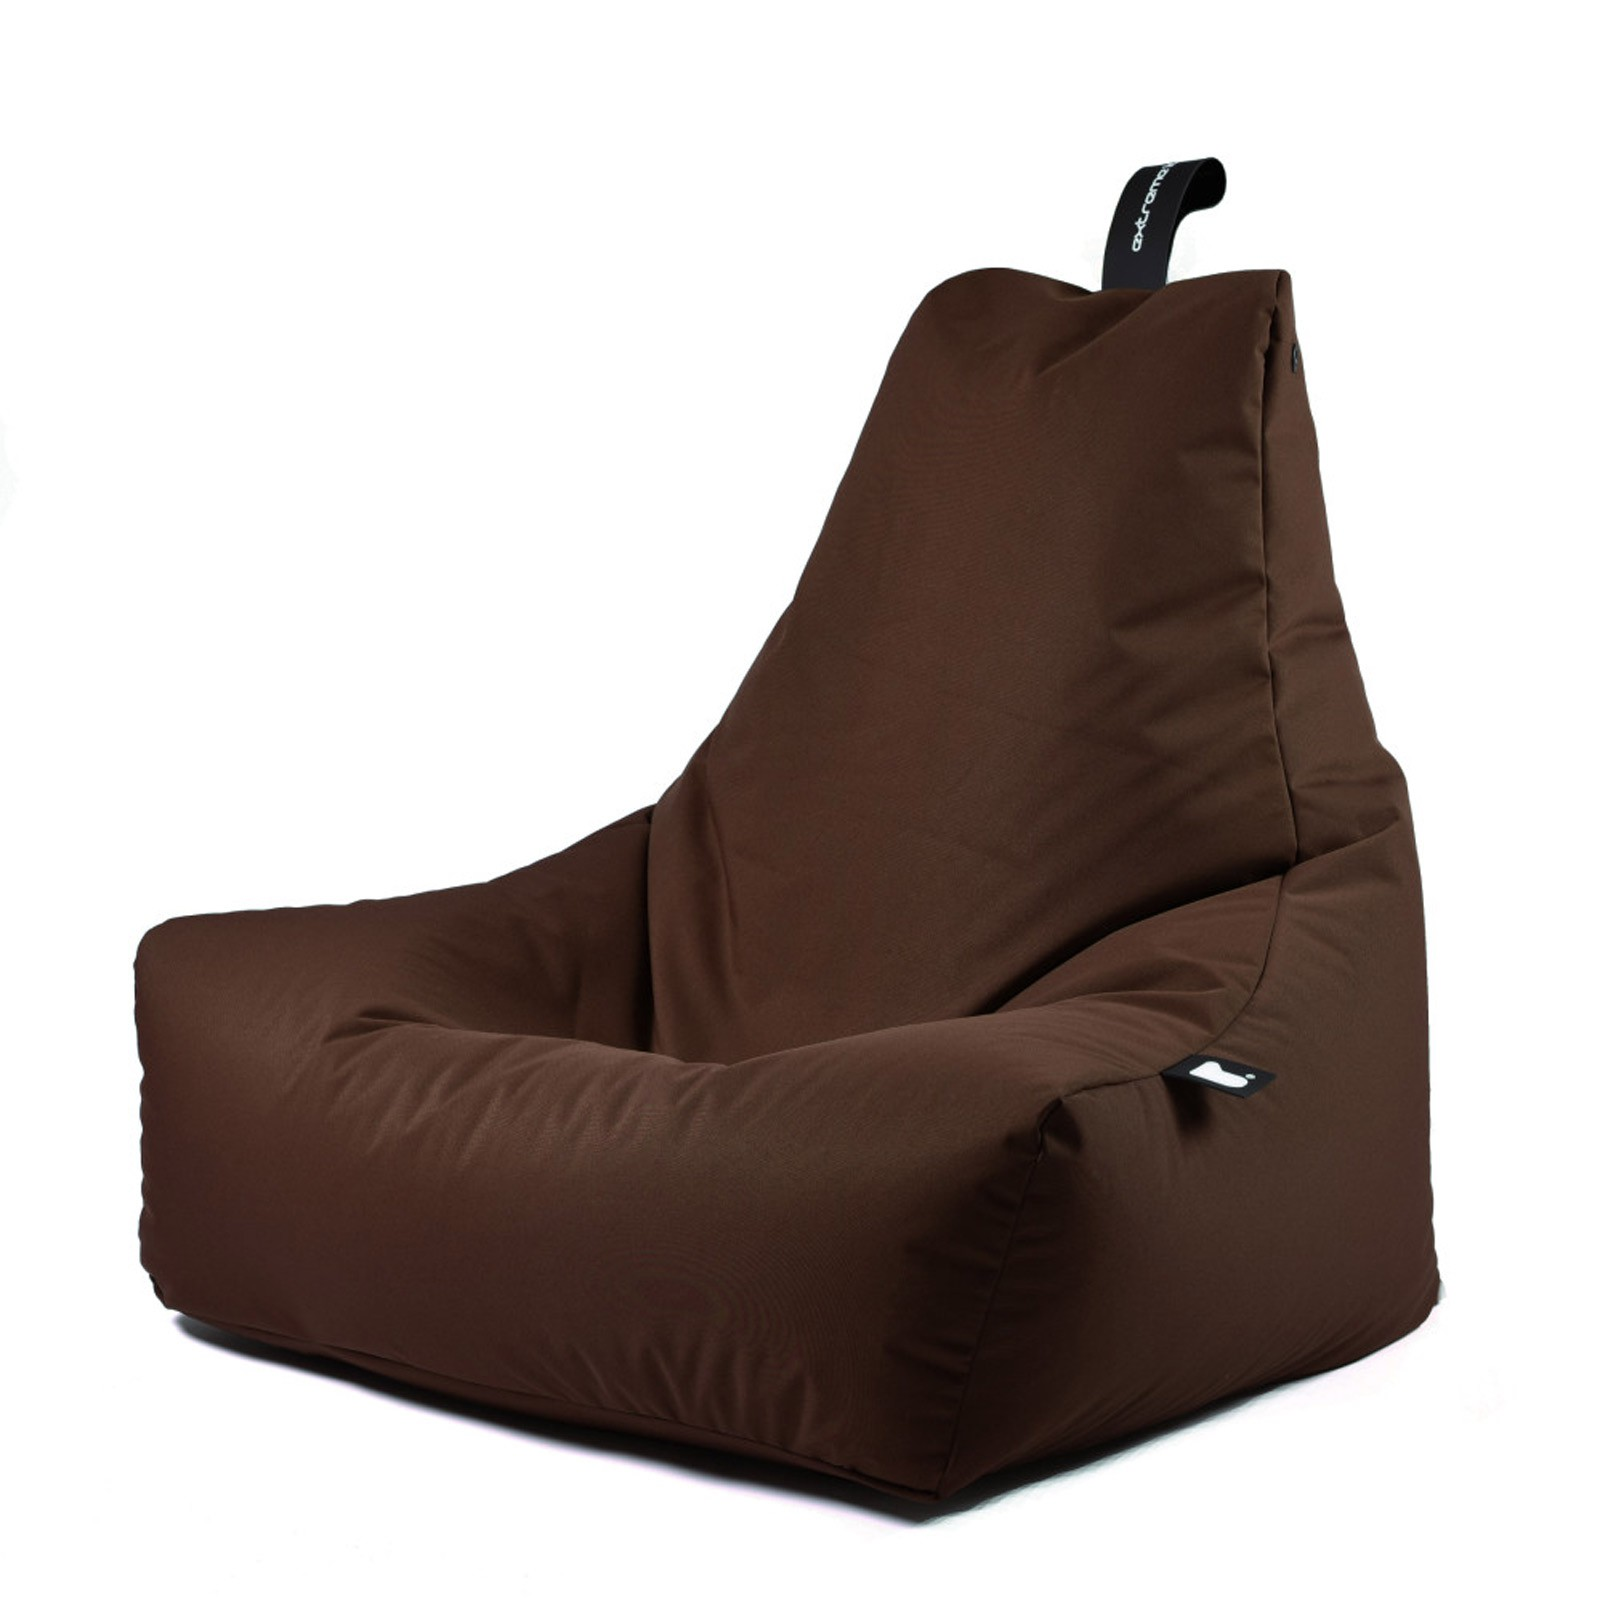 b-bag Extreme Lounging Sitzsack Indoor + Outdoor mighty-b Farbe Brown